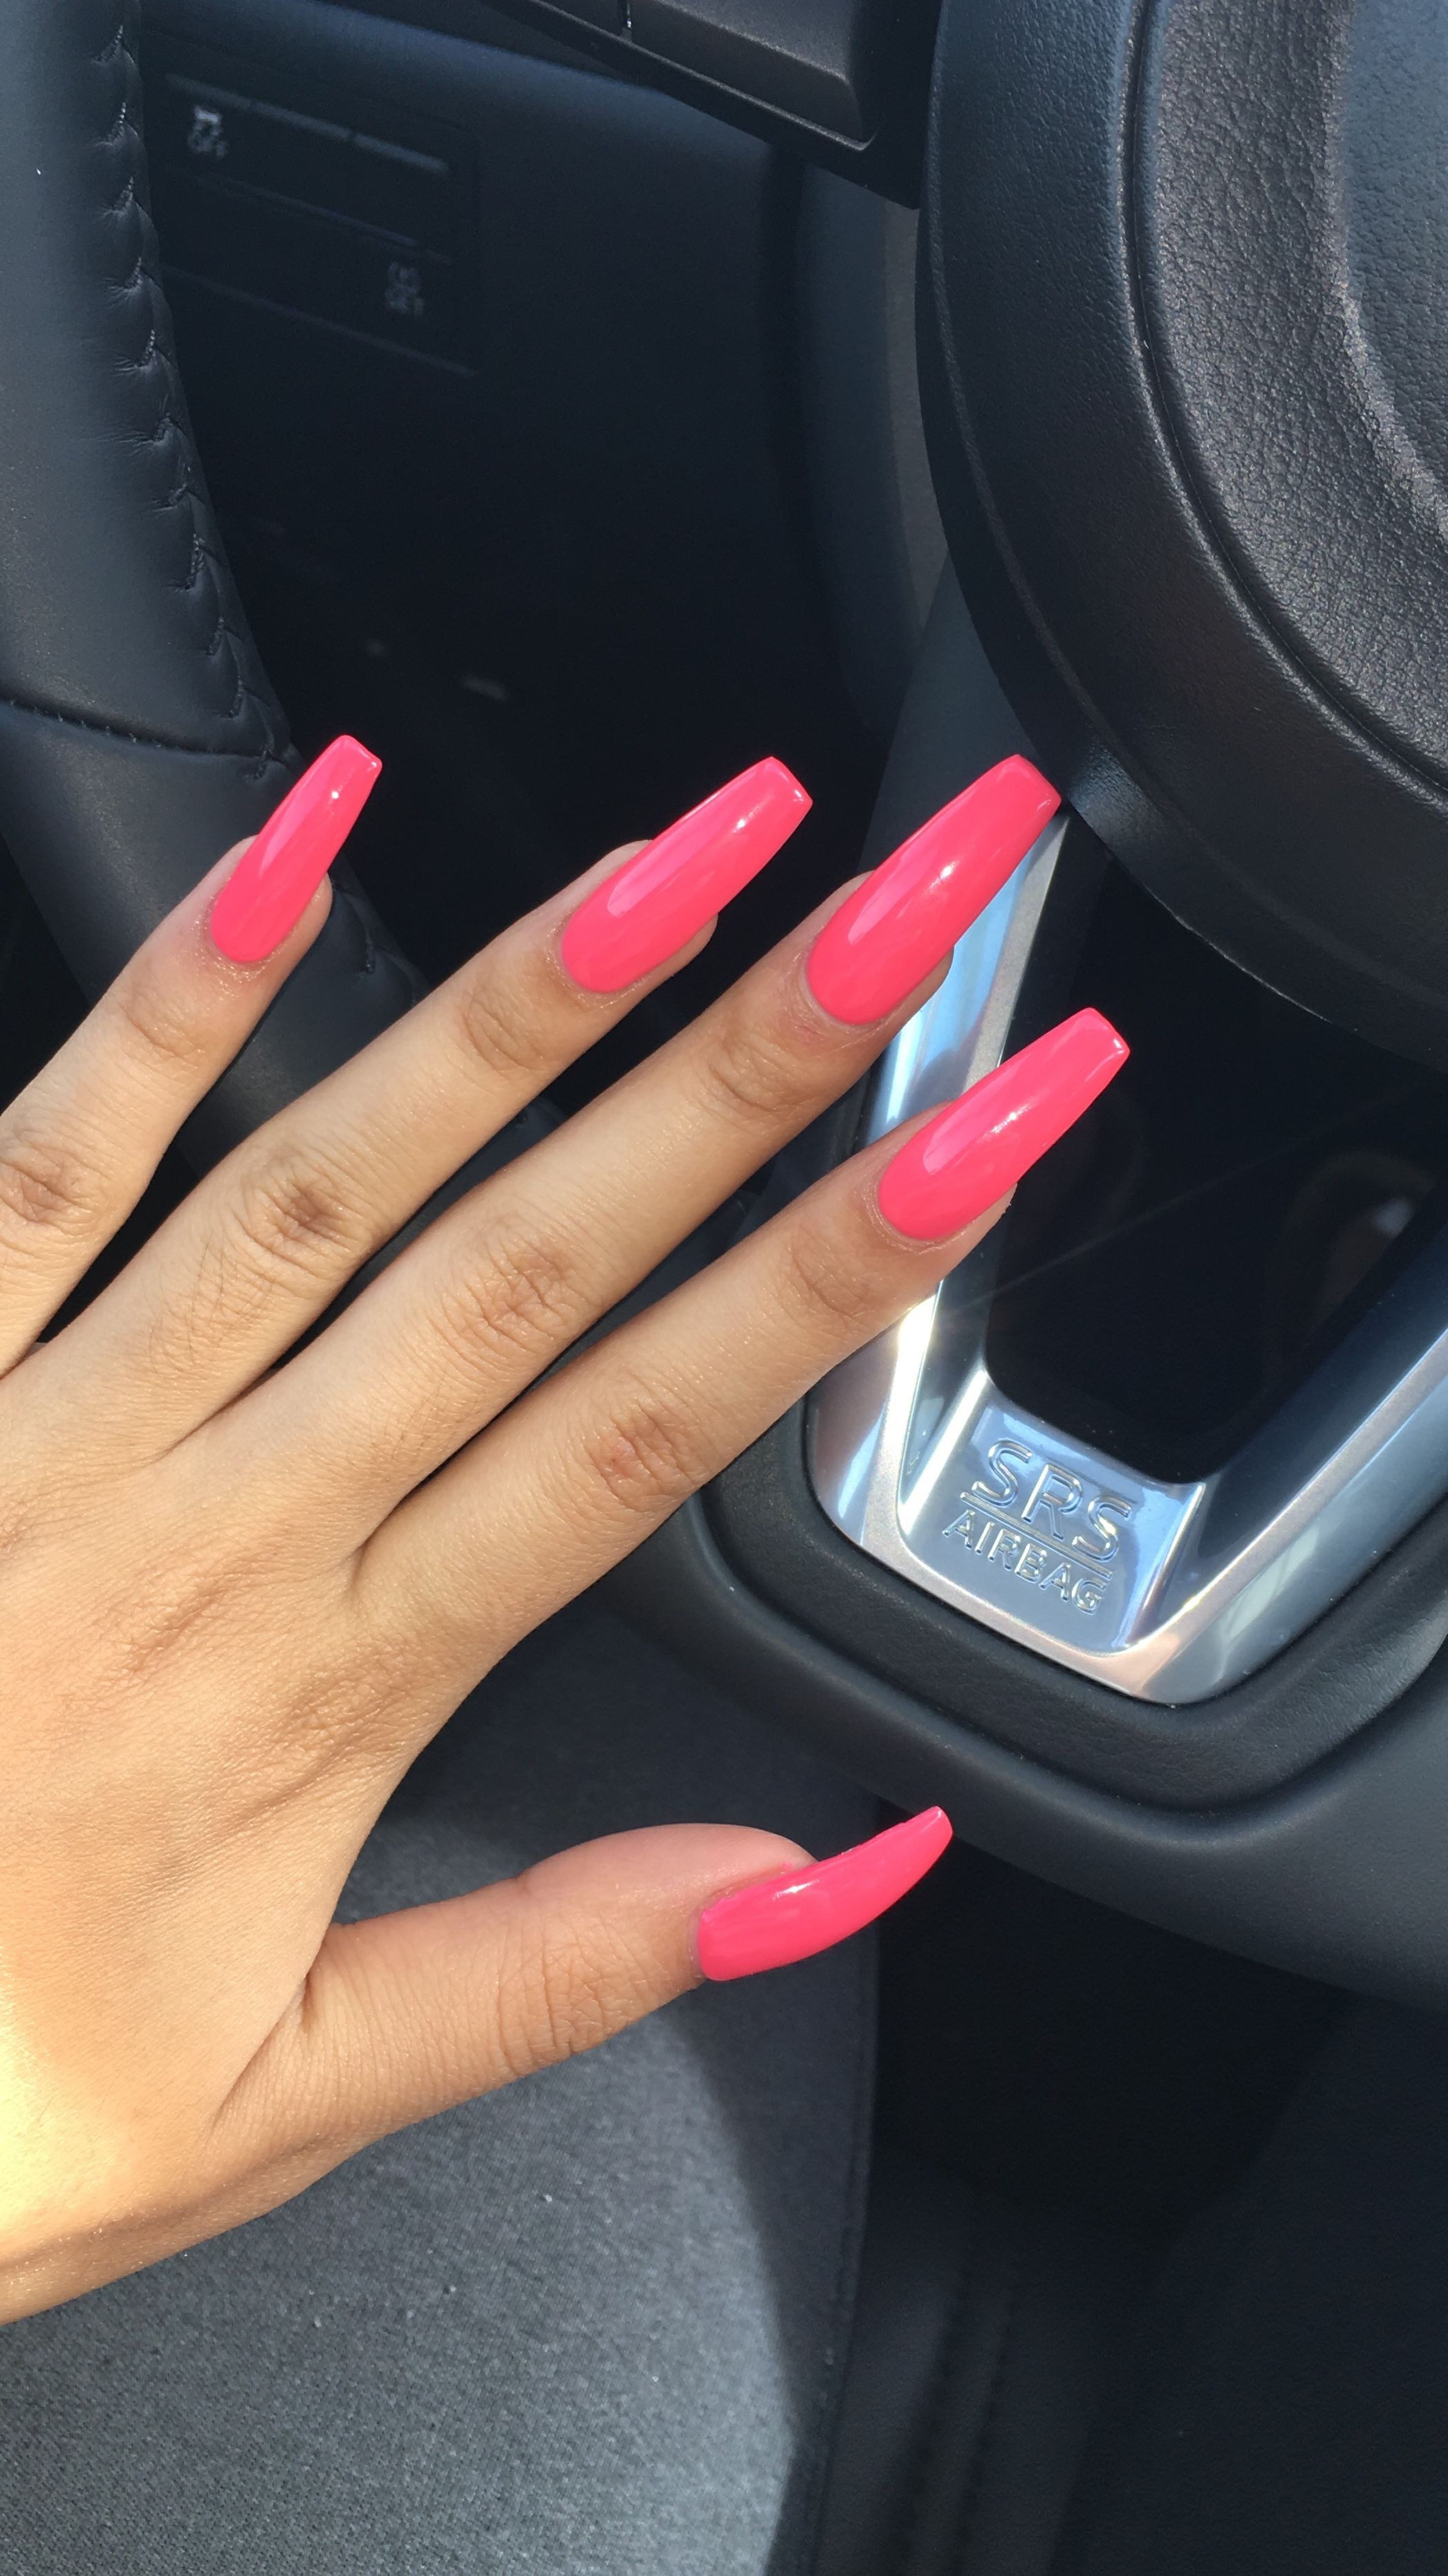 Hot Pink Acrylic Coffin Nails Pink Acrylic Nails Long Acrylic Nails Colourful Acrylic Nails